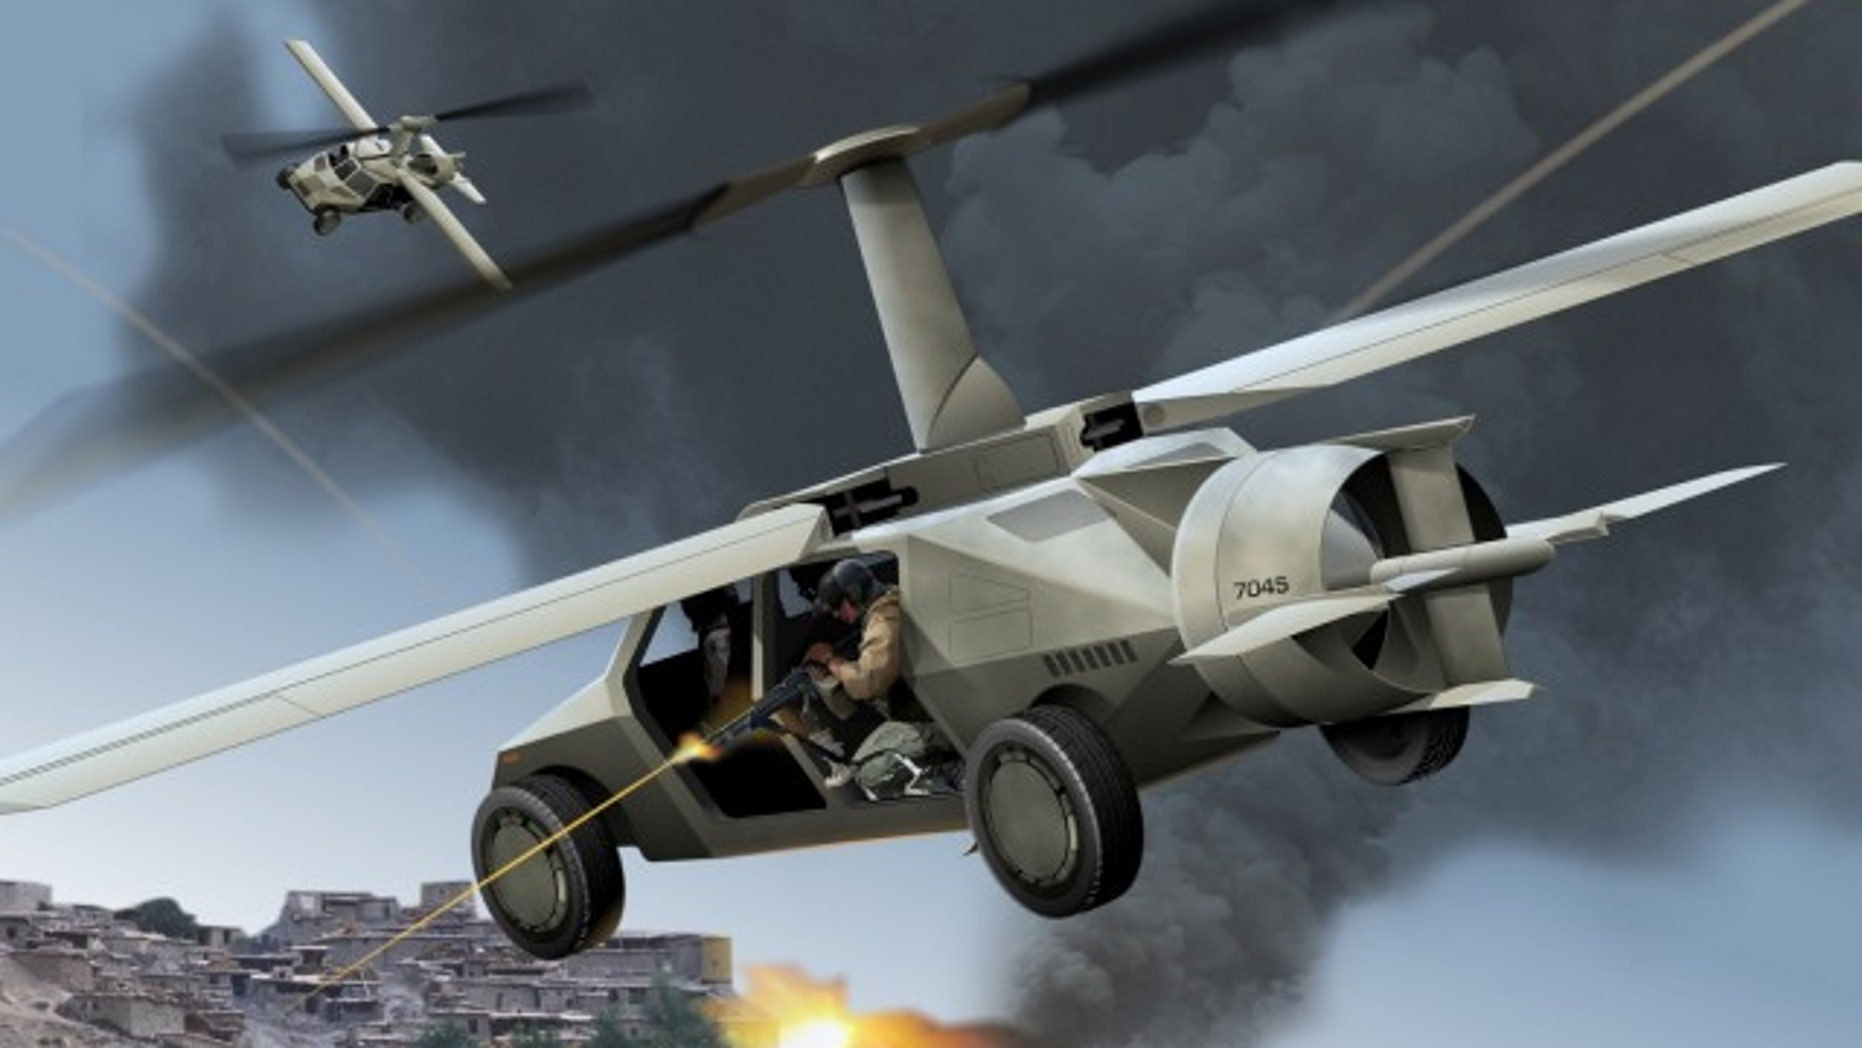 DARPA is developing an autonomous flying vehicle.